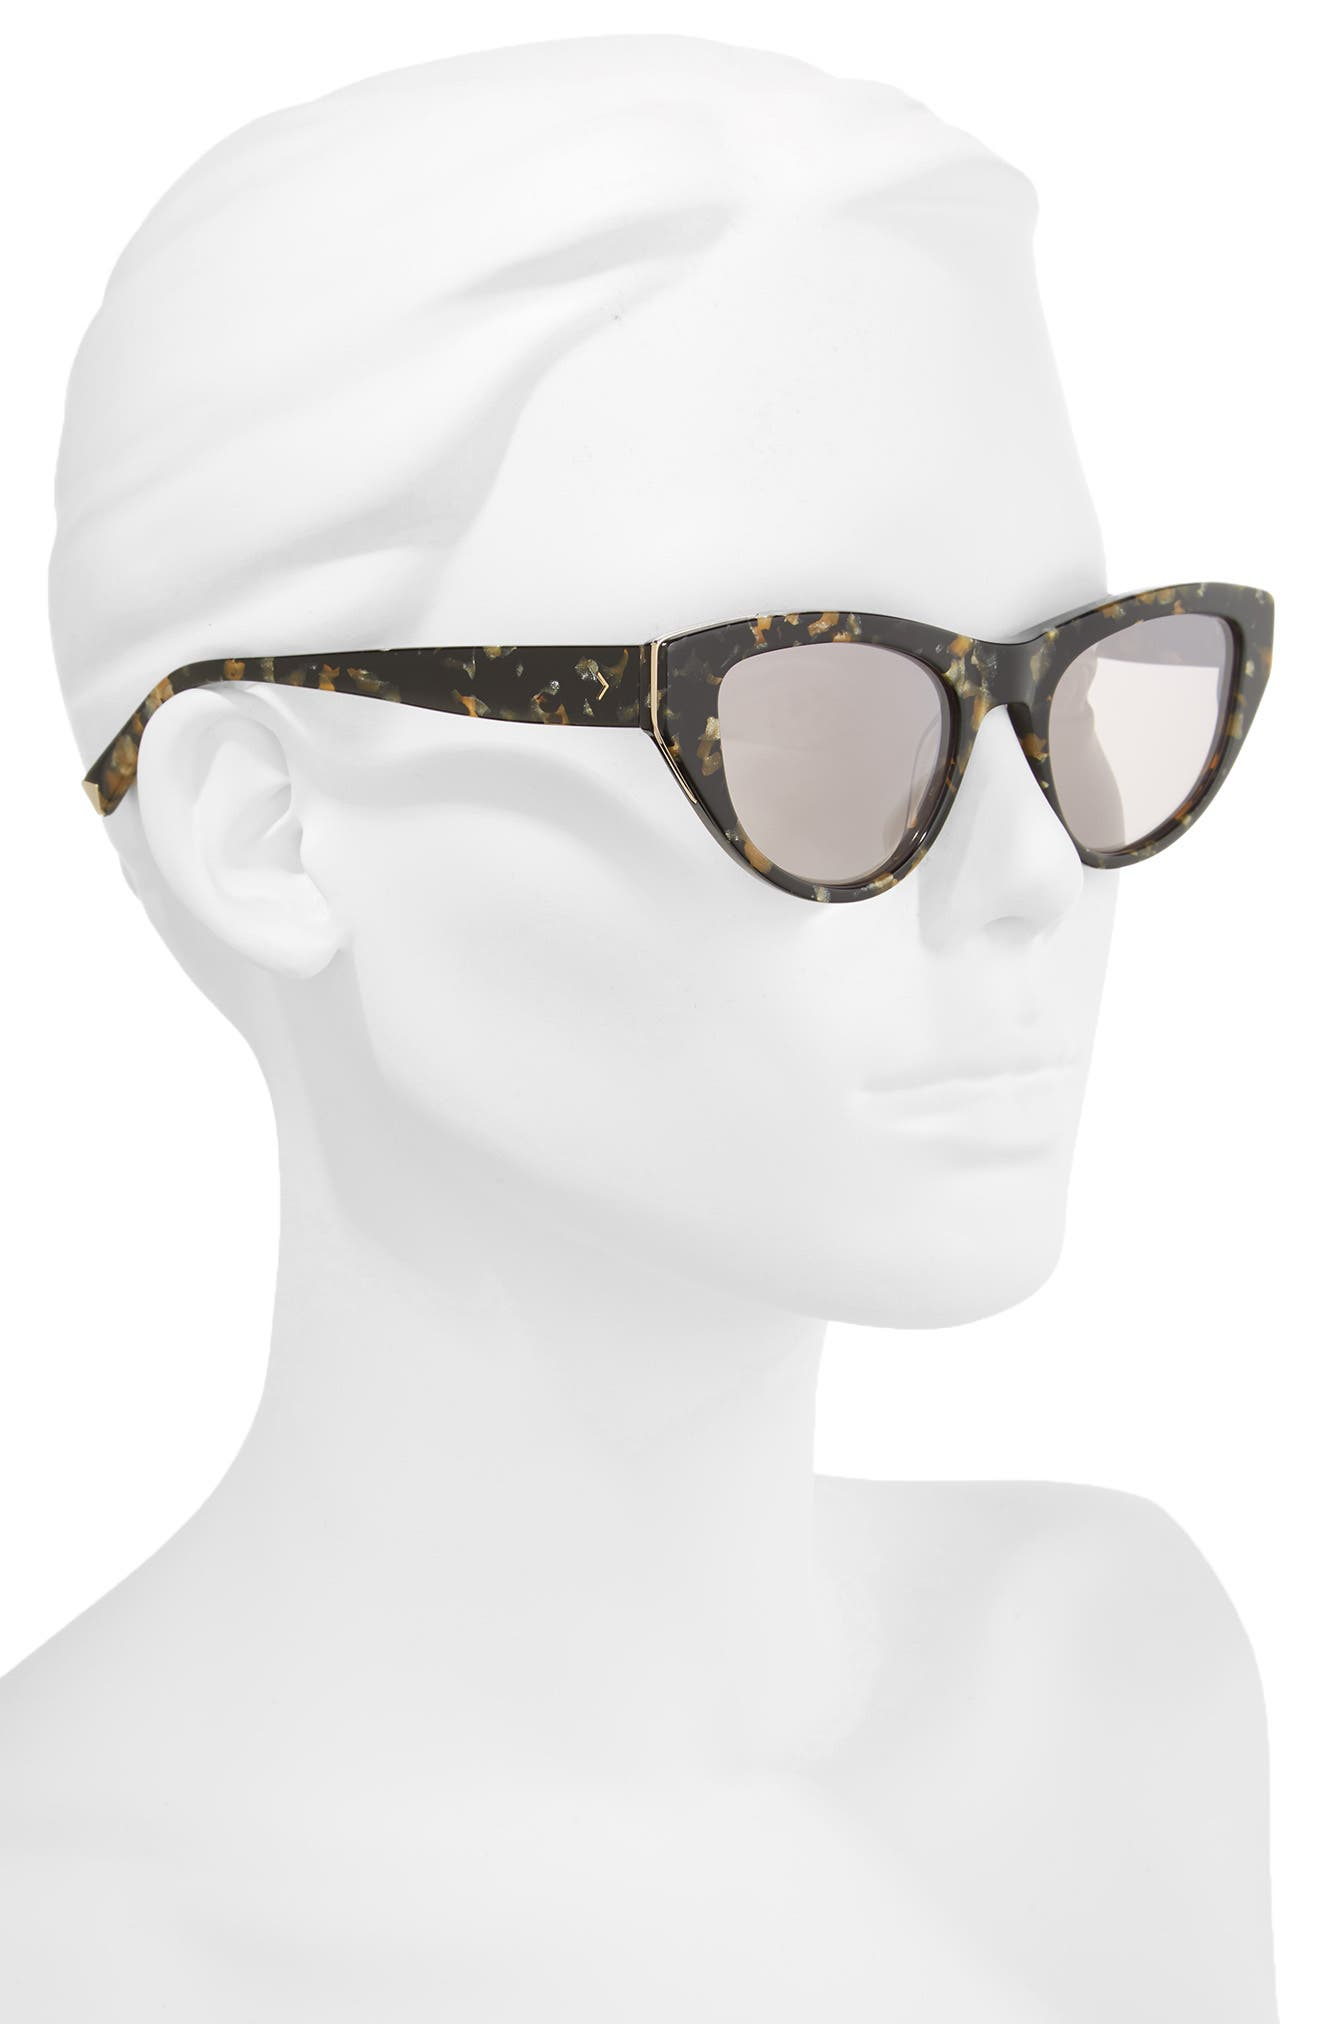 Sienna 52mm Retro Cat Eye Sunglasses,                             Alternate thumbnail 2, color,                             Black Gold Pearl/ Gold